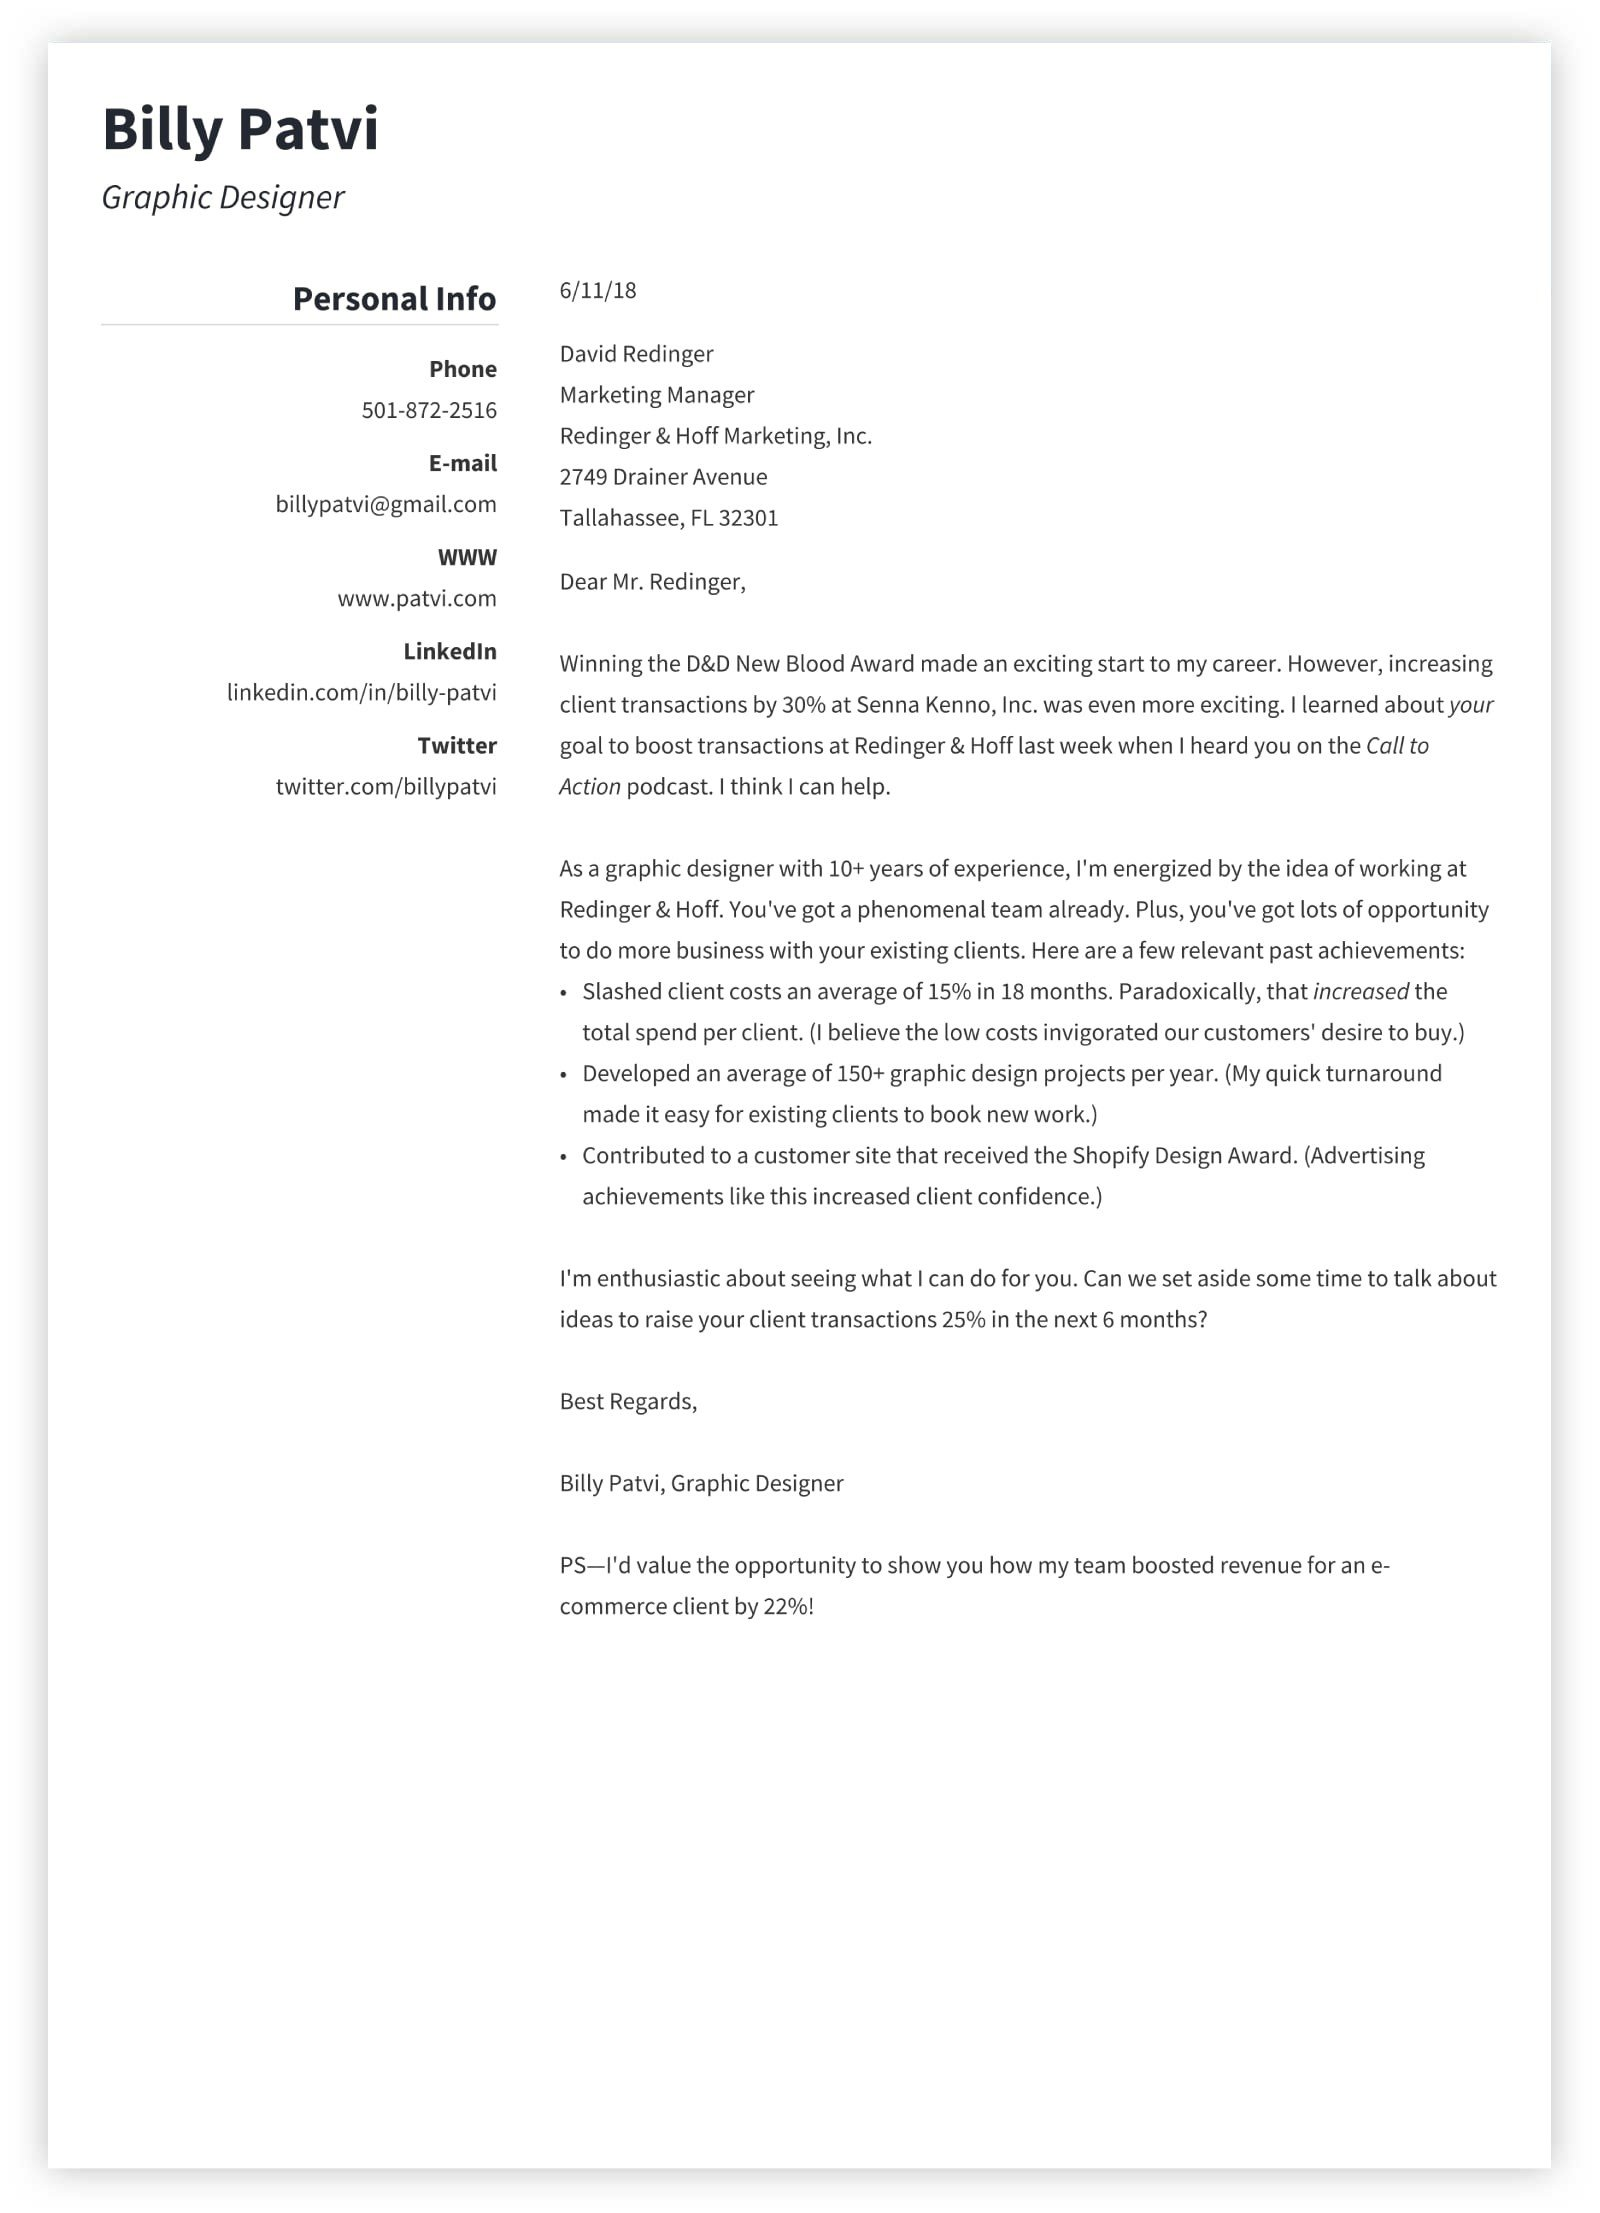 Cover Letter Examples for 2019 [+Writing Tips]